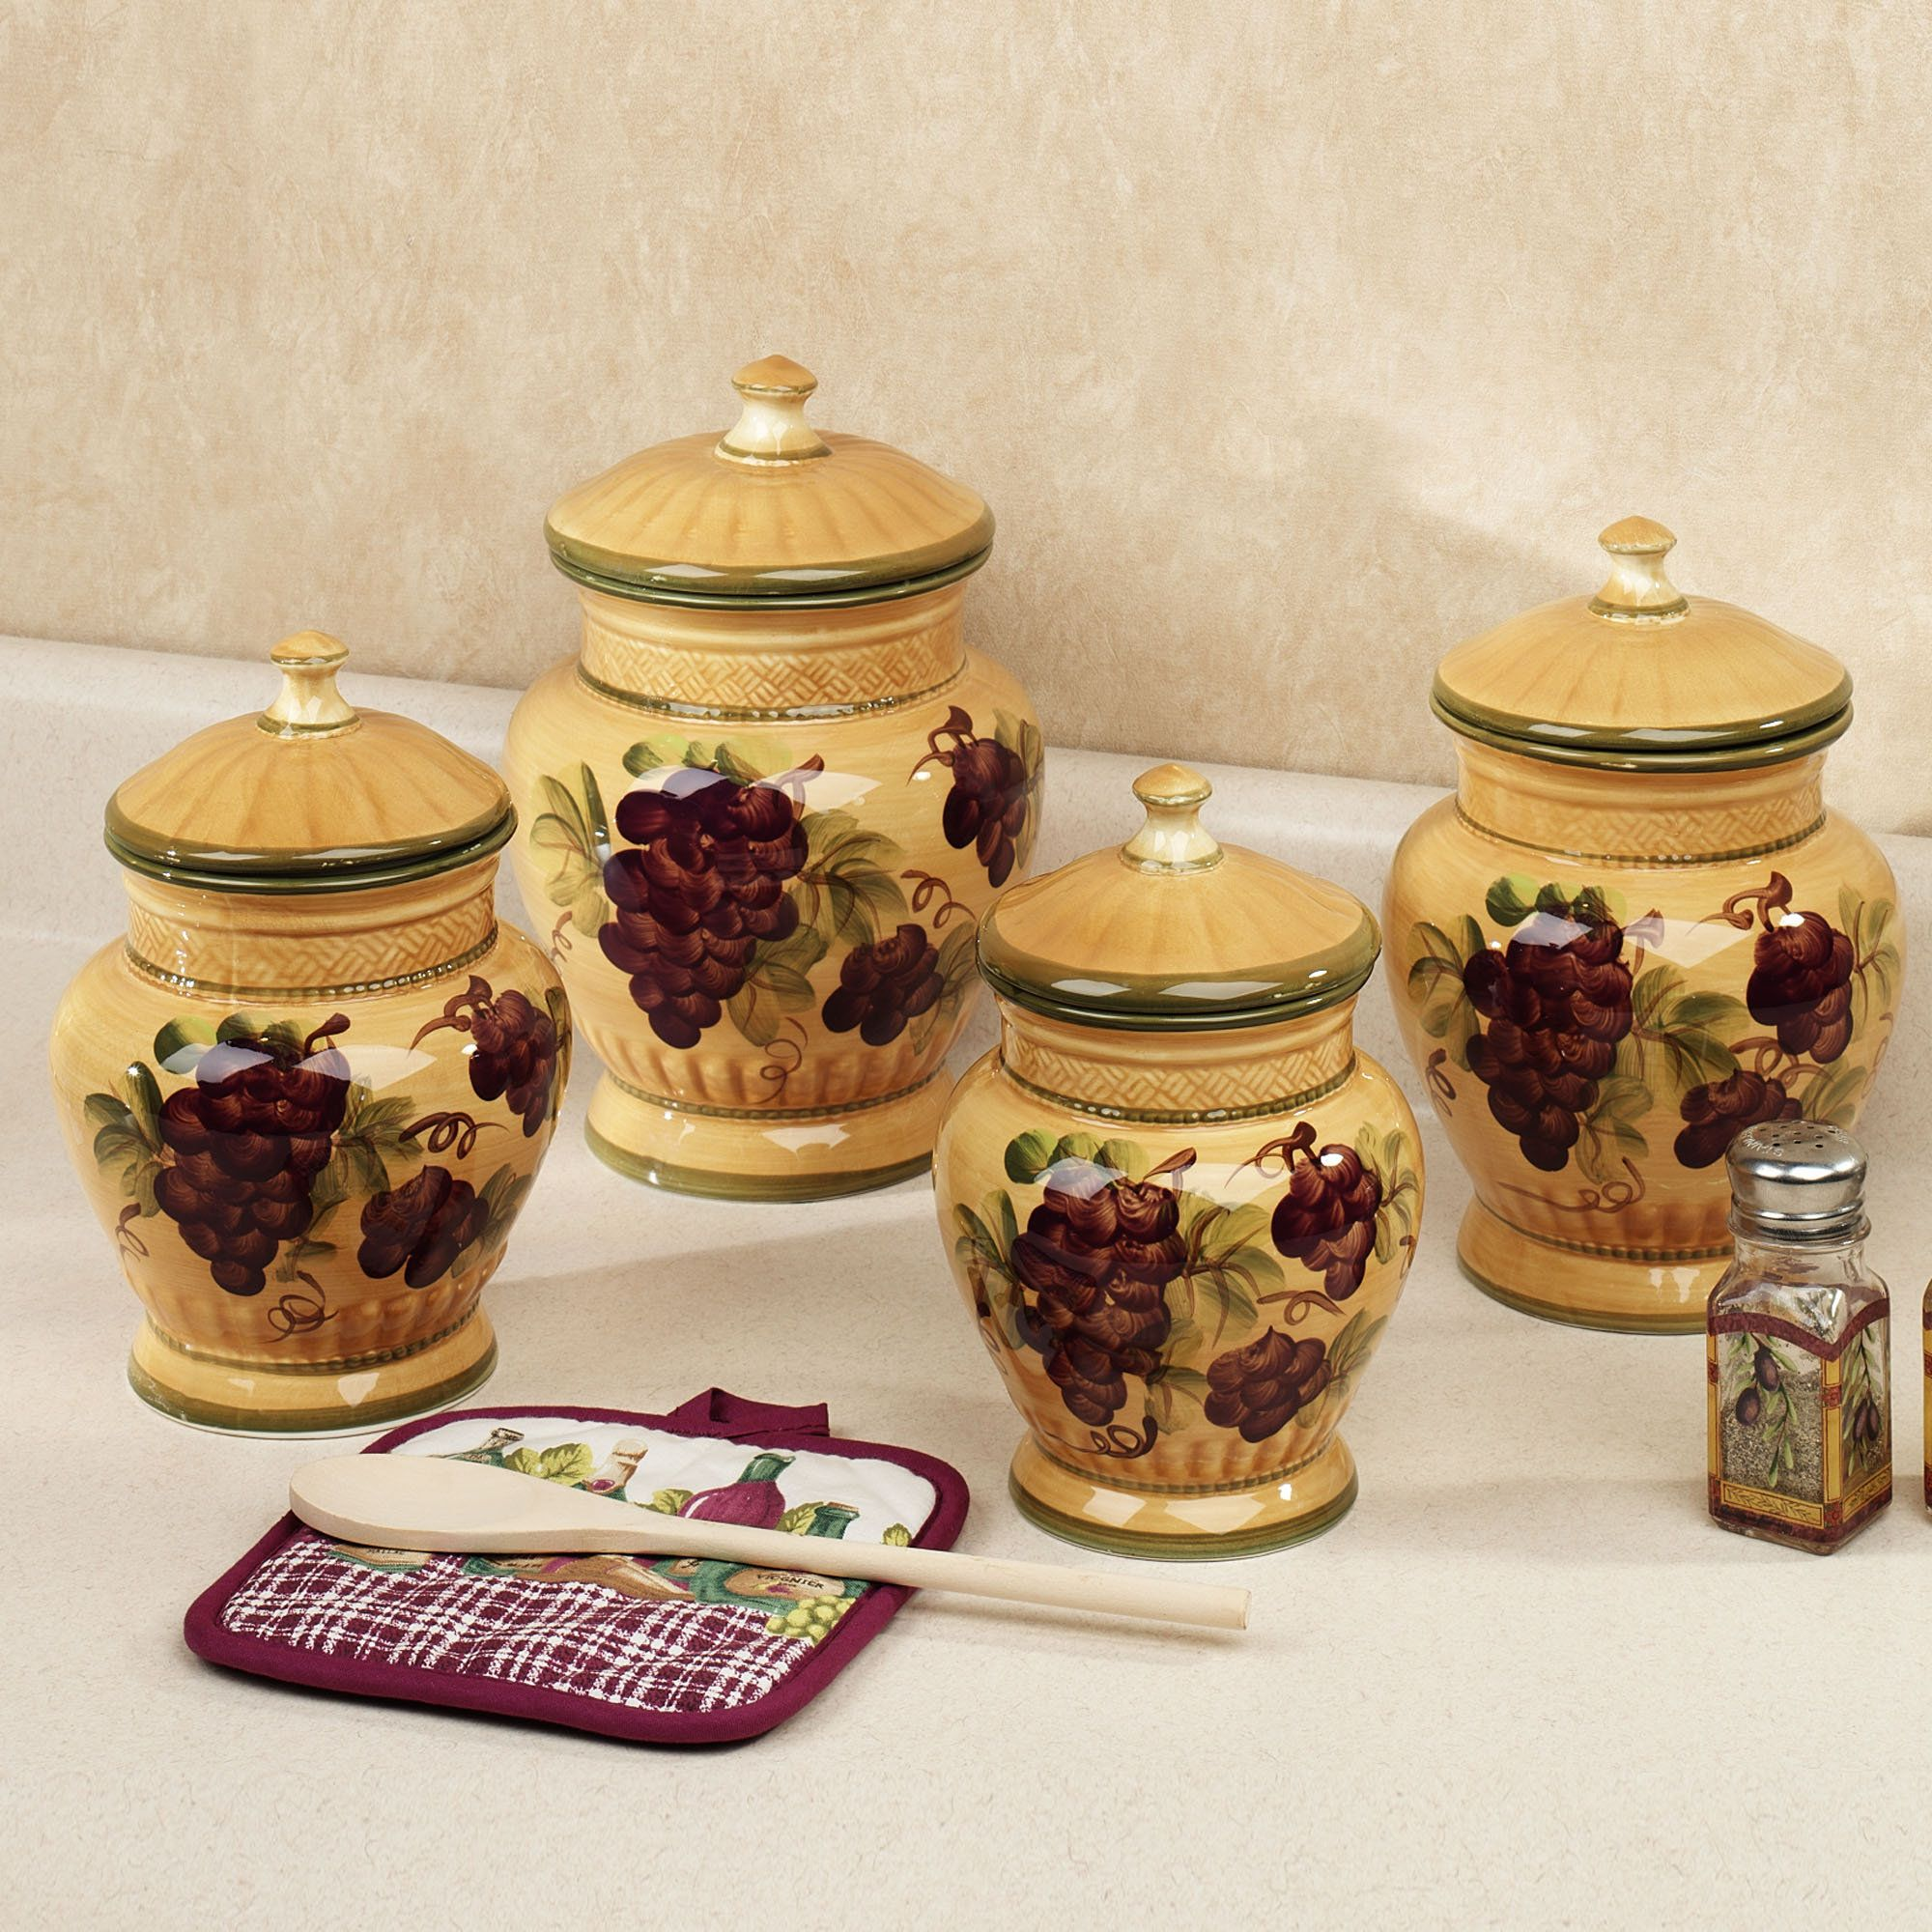 decorative kitchen canisters sets kohler undermount sinks picture of ceramic grapes canister for